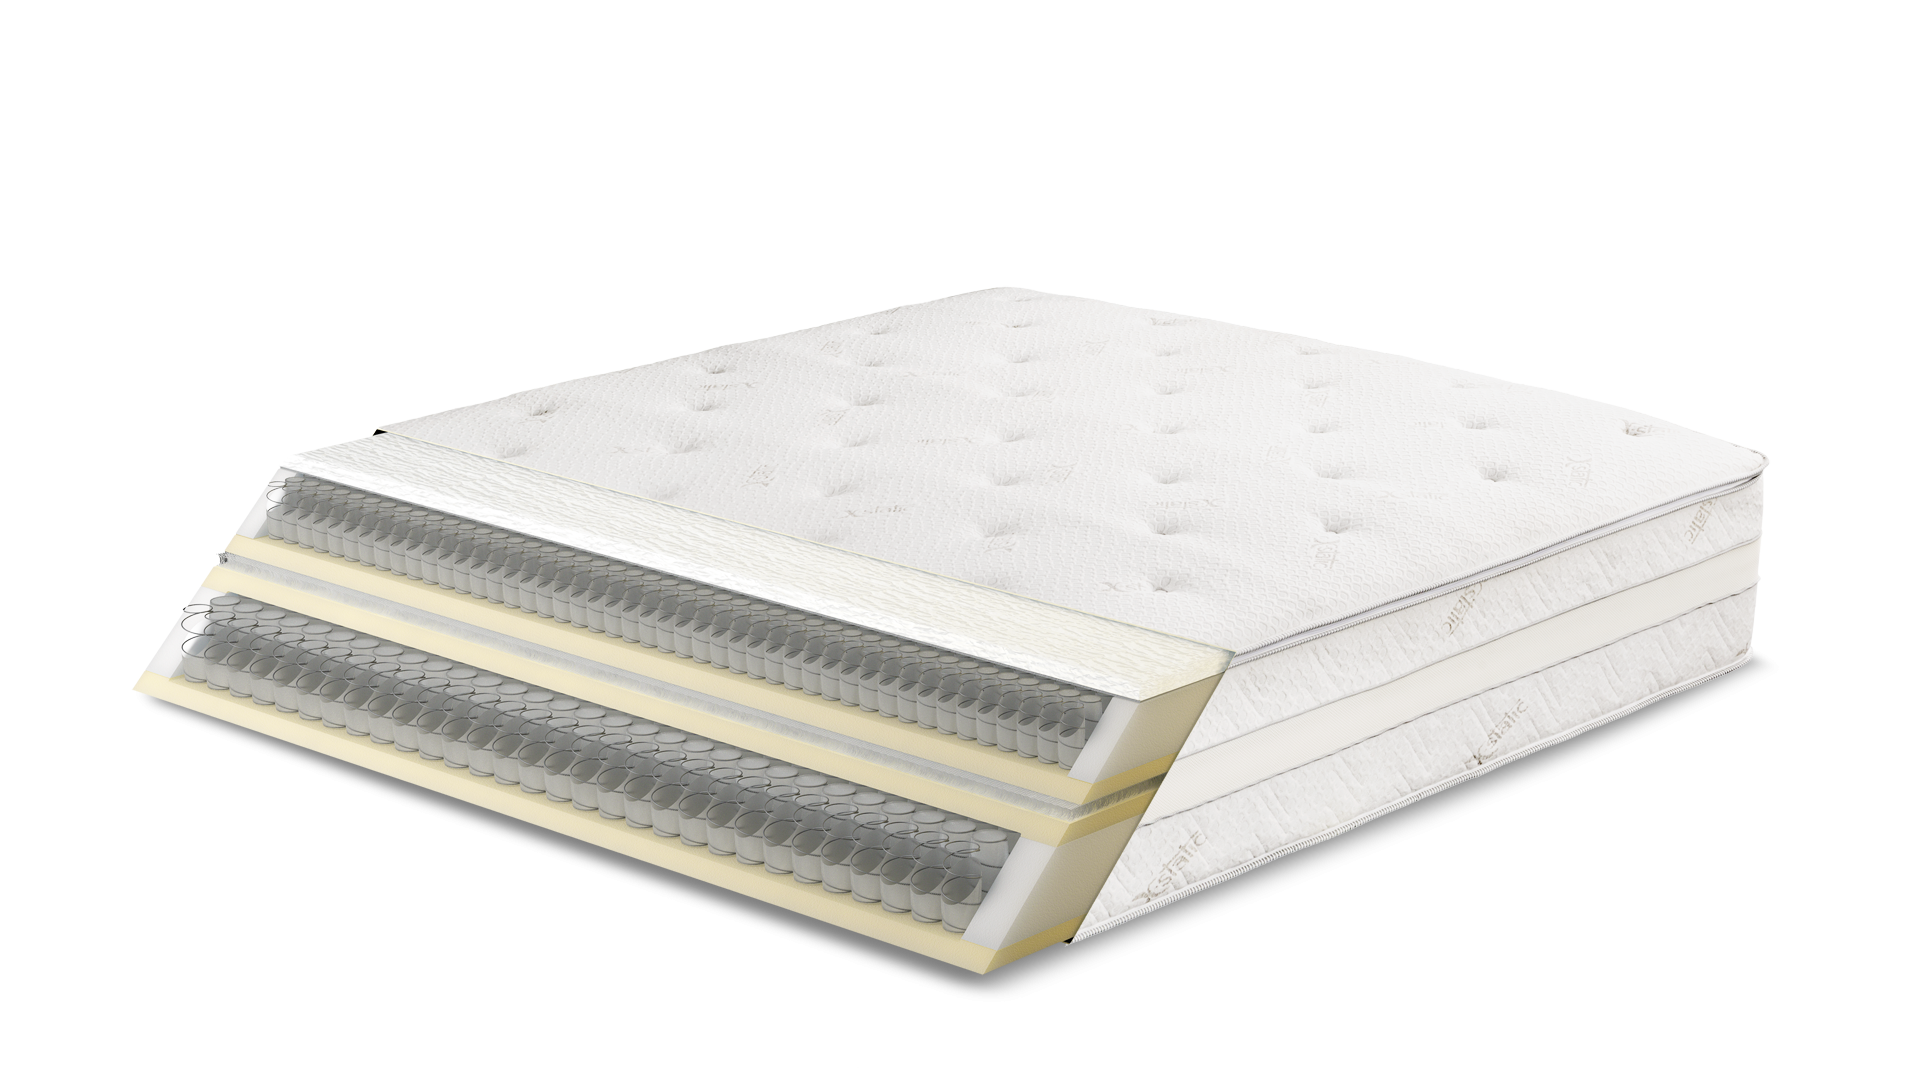 mebloJOGI® Nirvana is a luxurious mattress